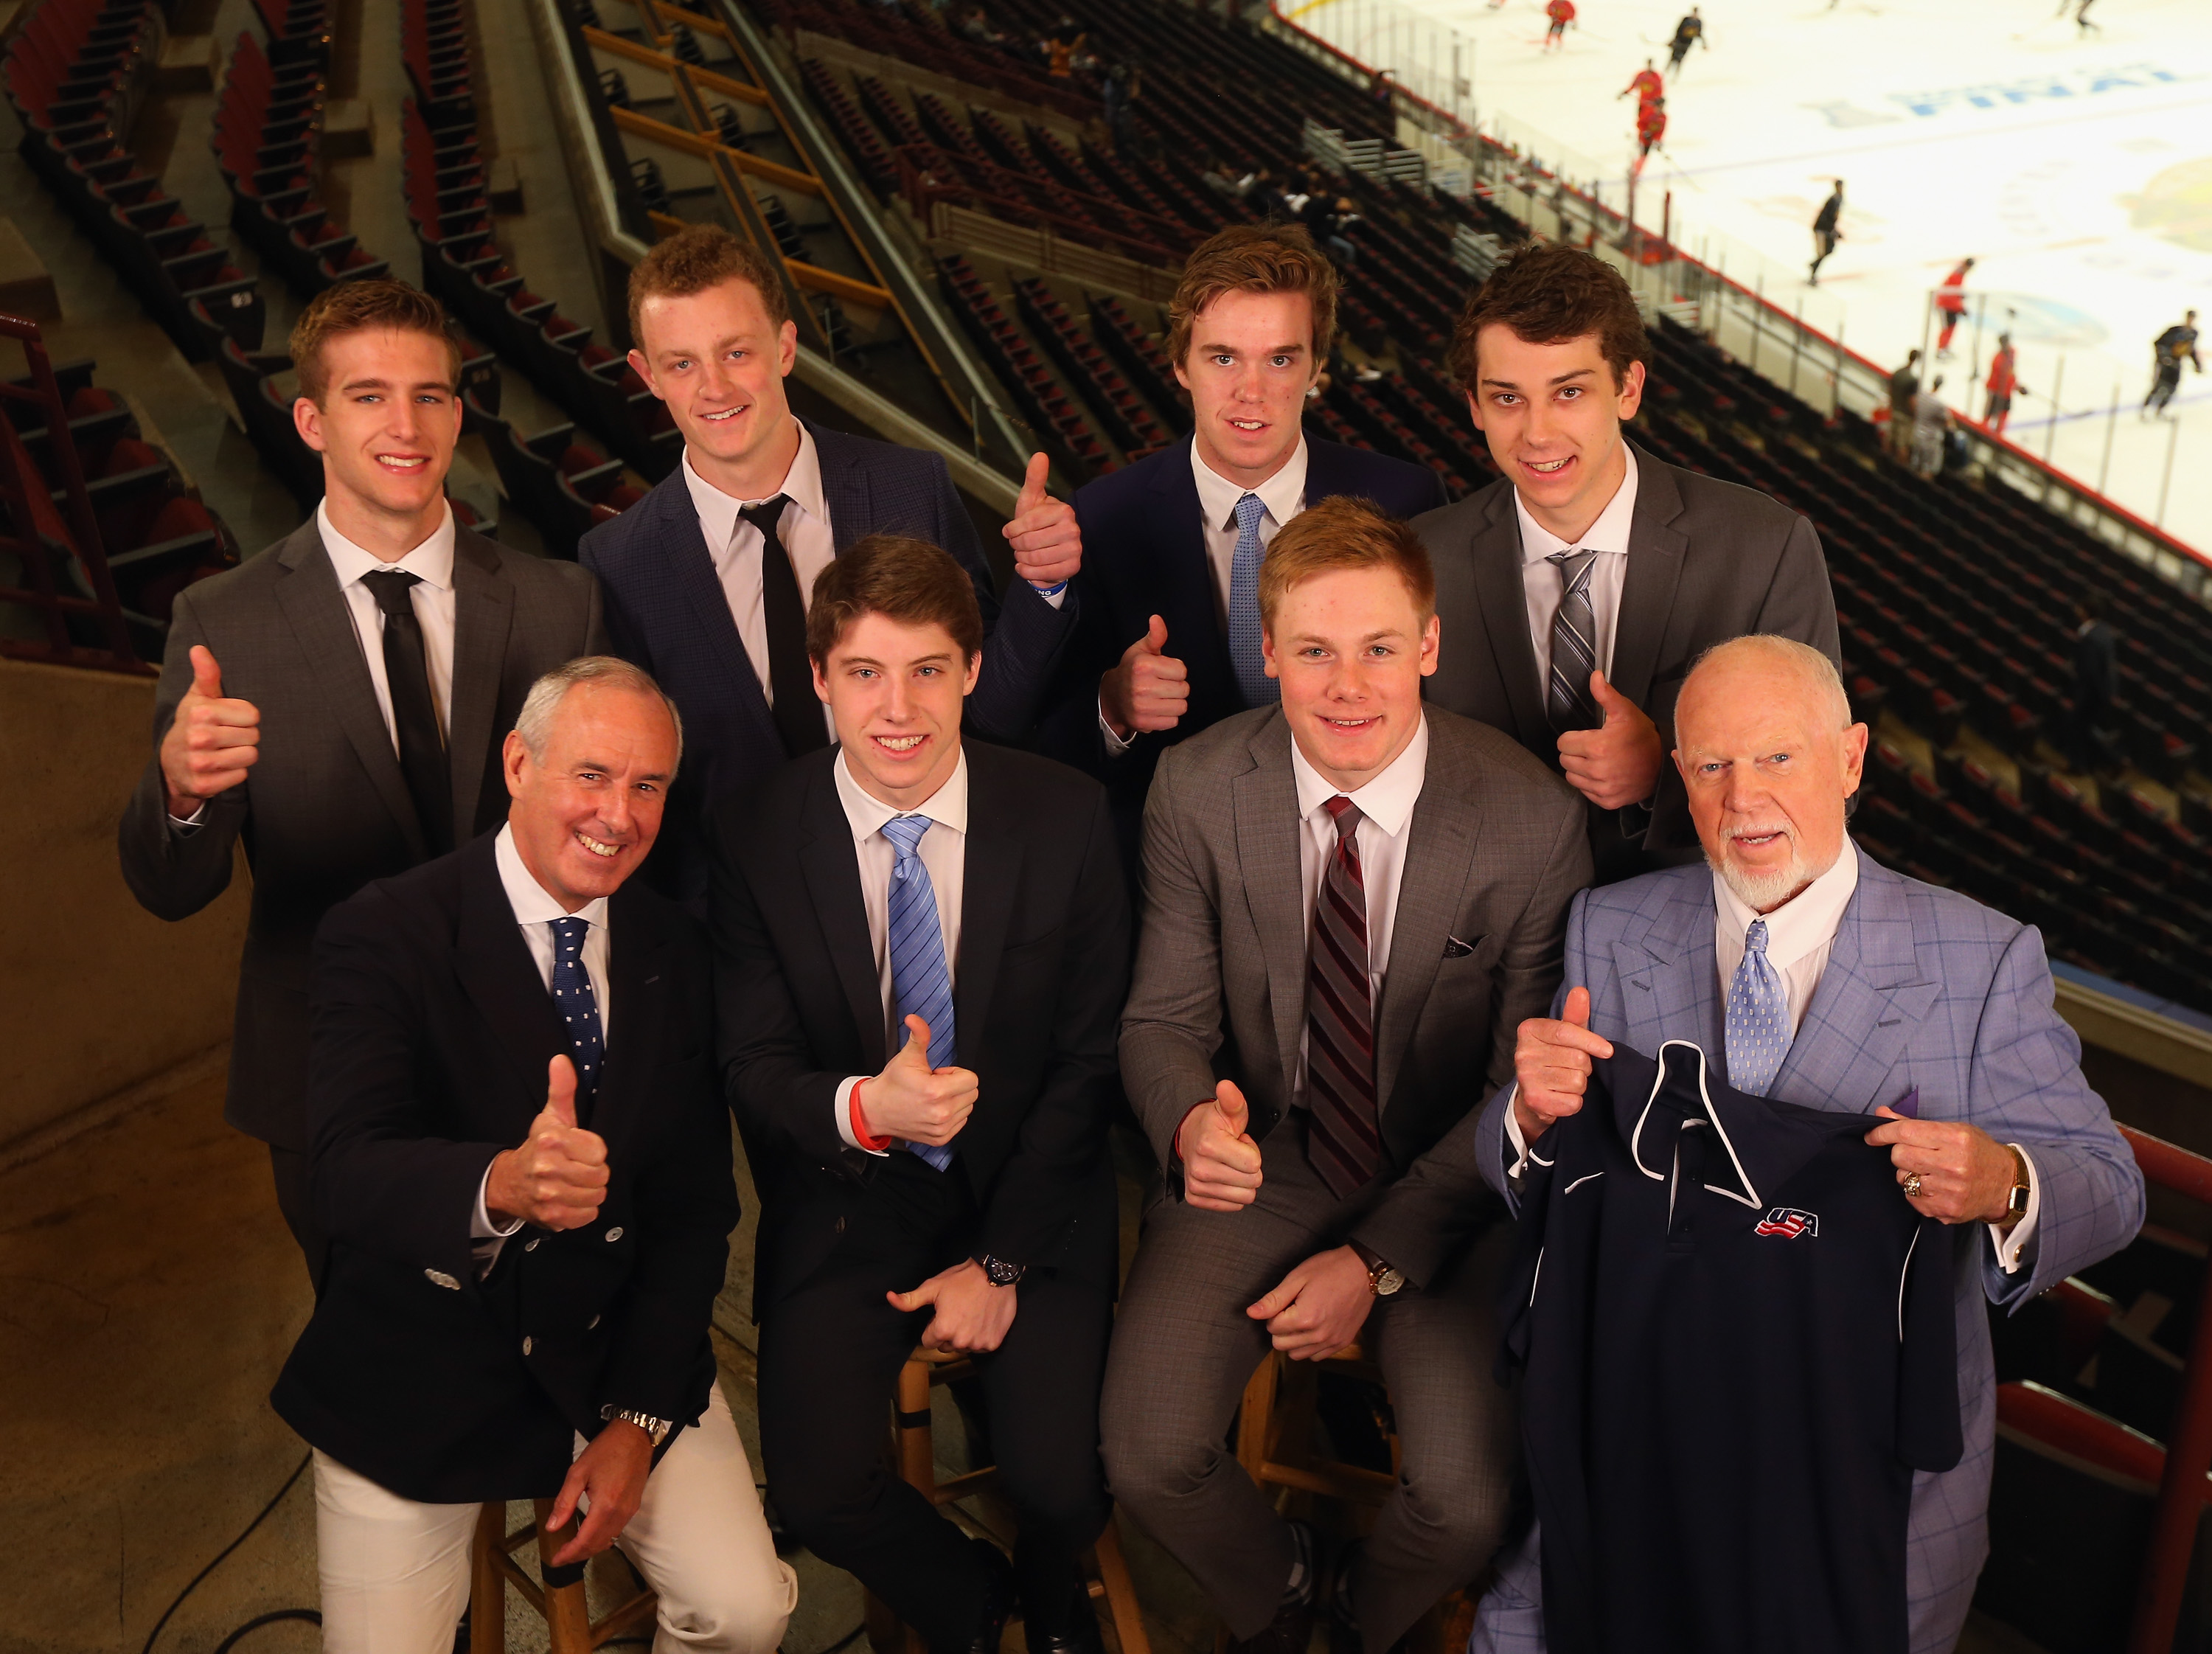 Will the Devils select anyone in this picture? According to mock drafts of the first round, no.  Barzal isn't in this photo.